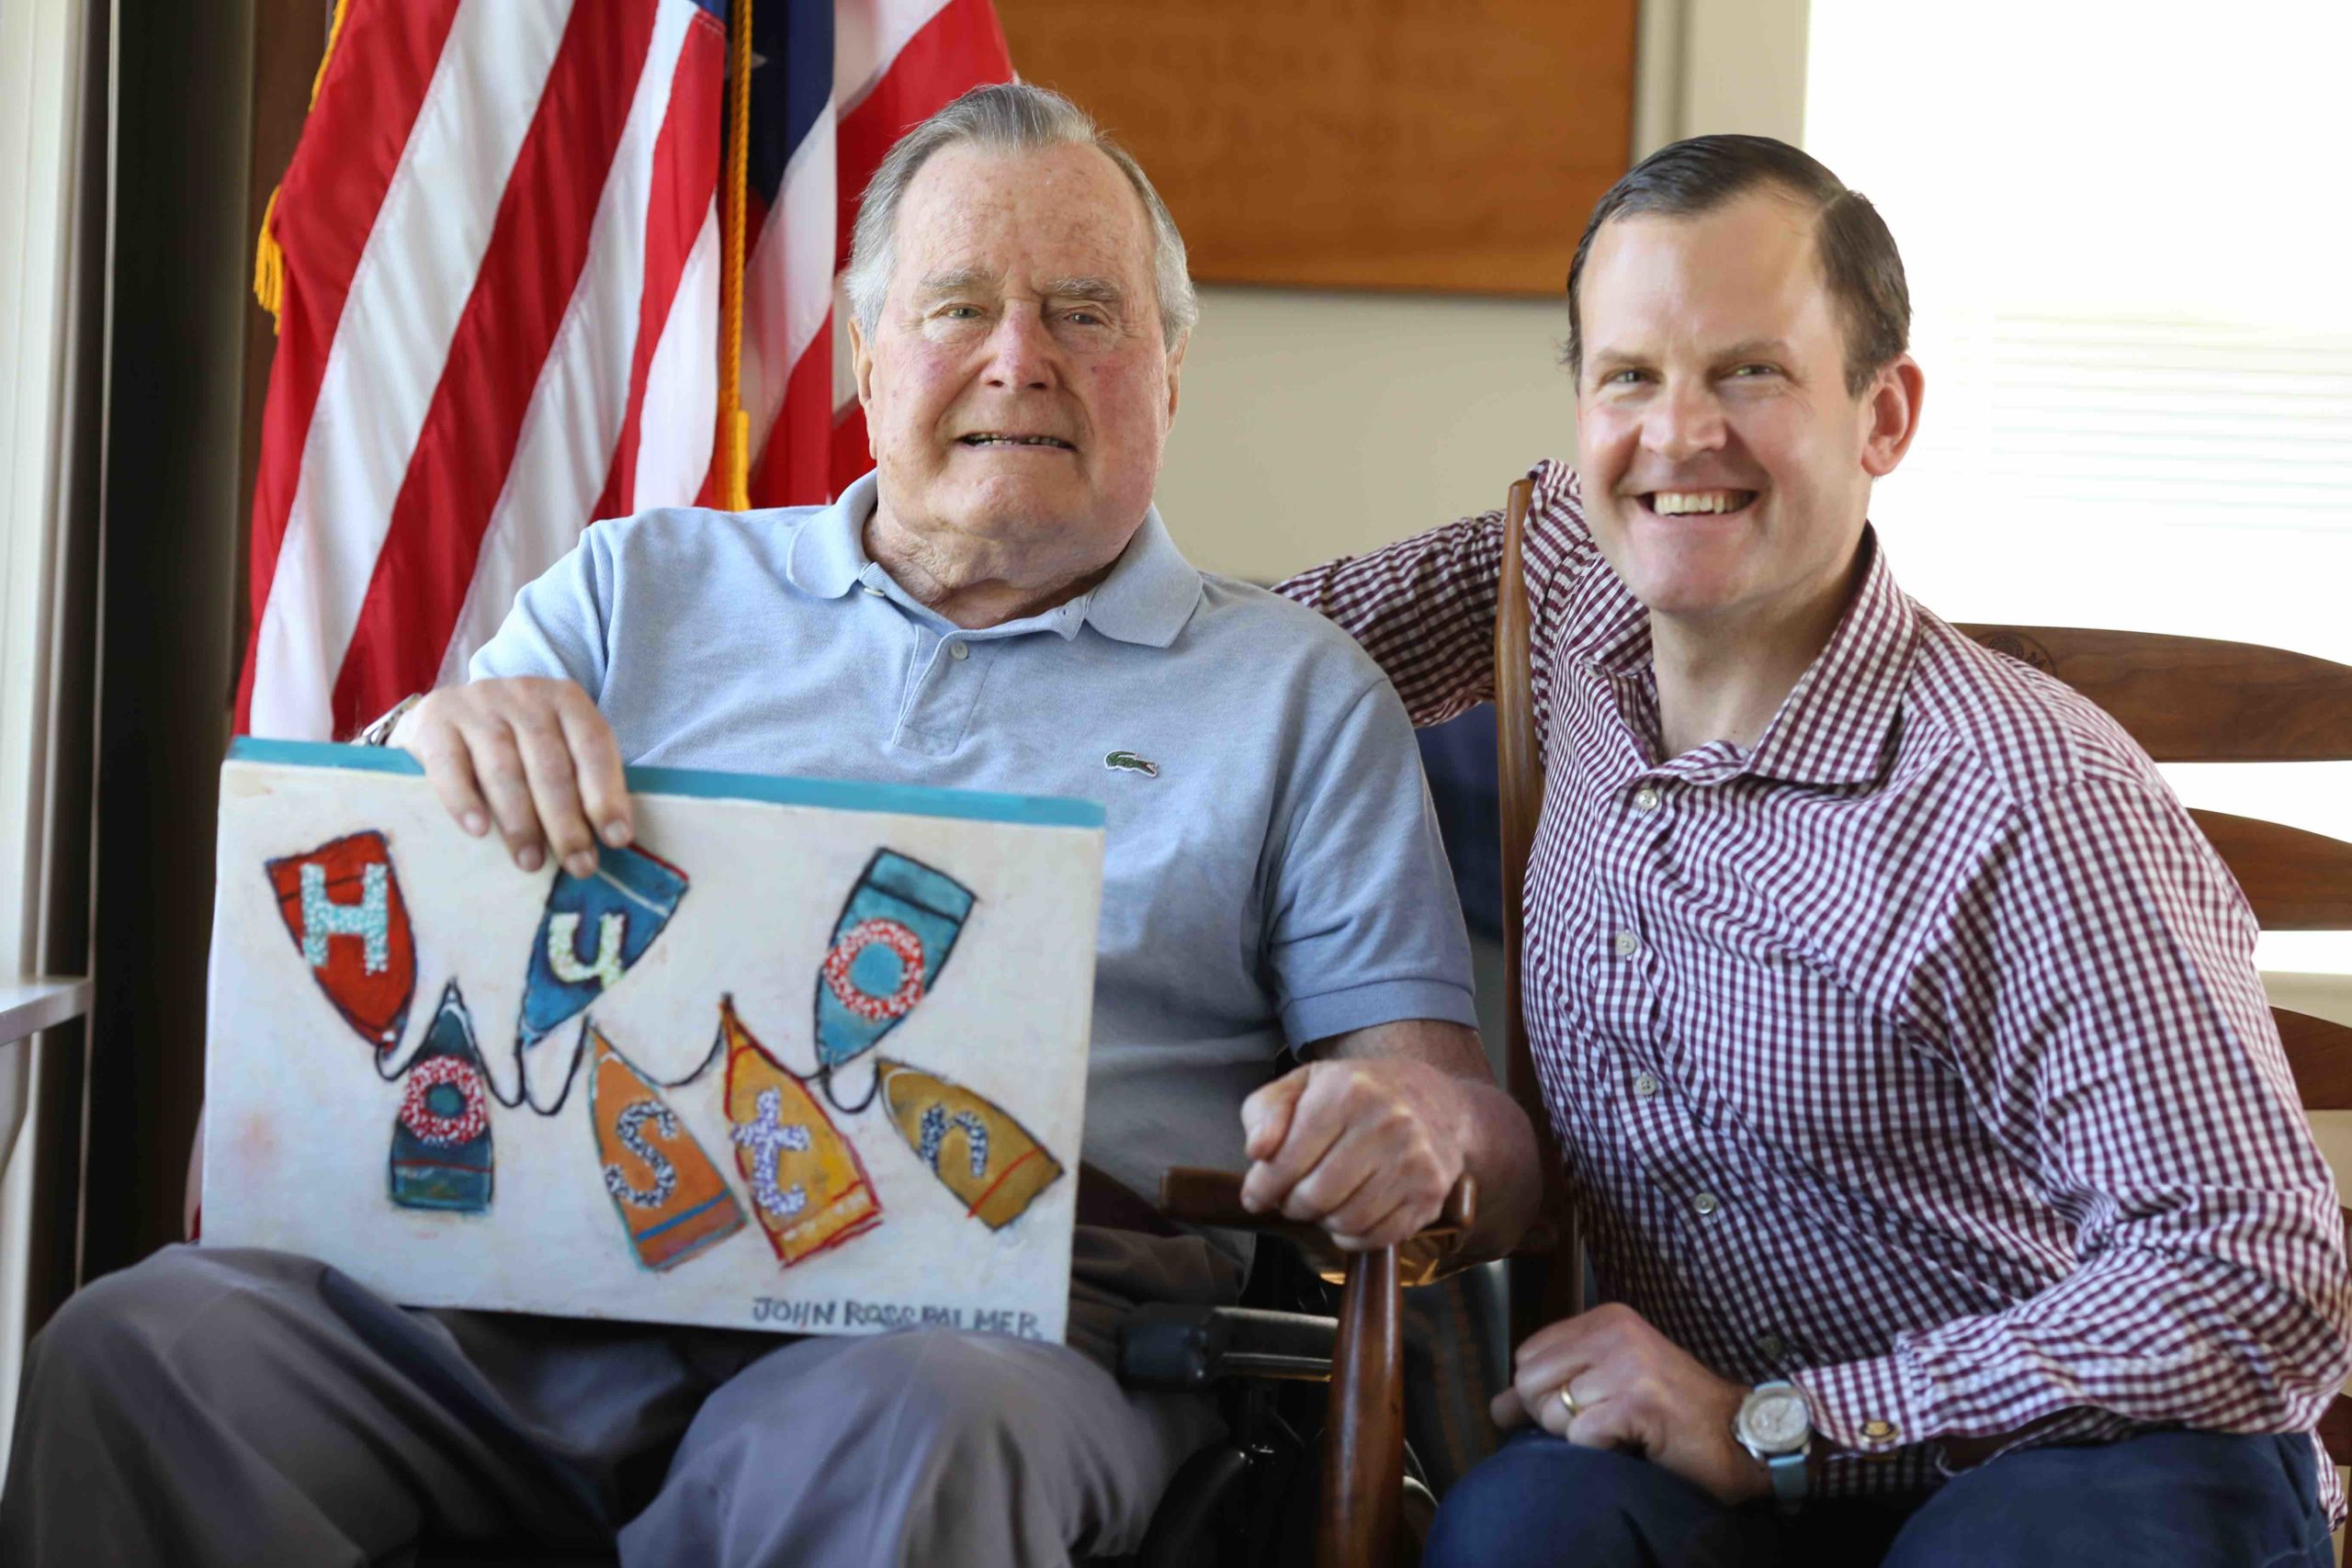 President George H W Bush with John Ross Palmer